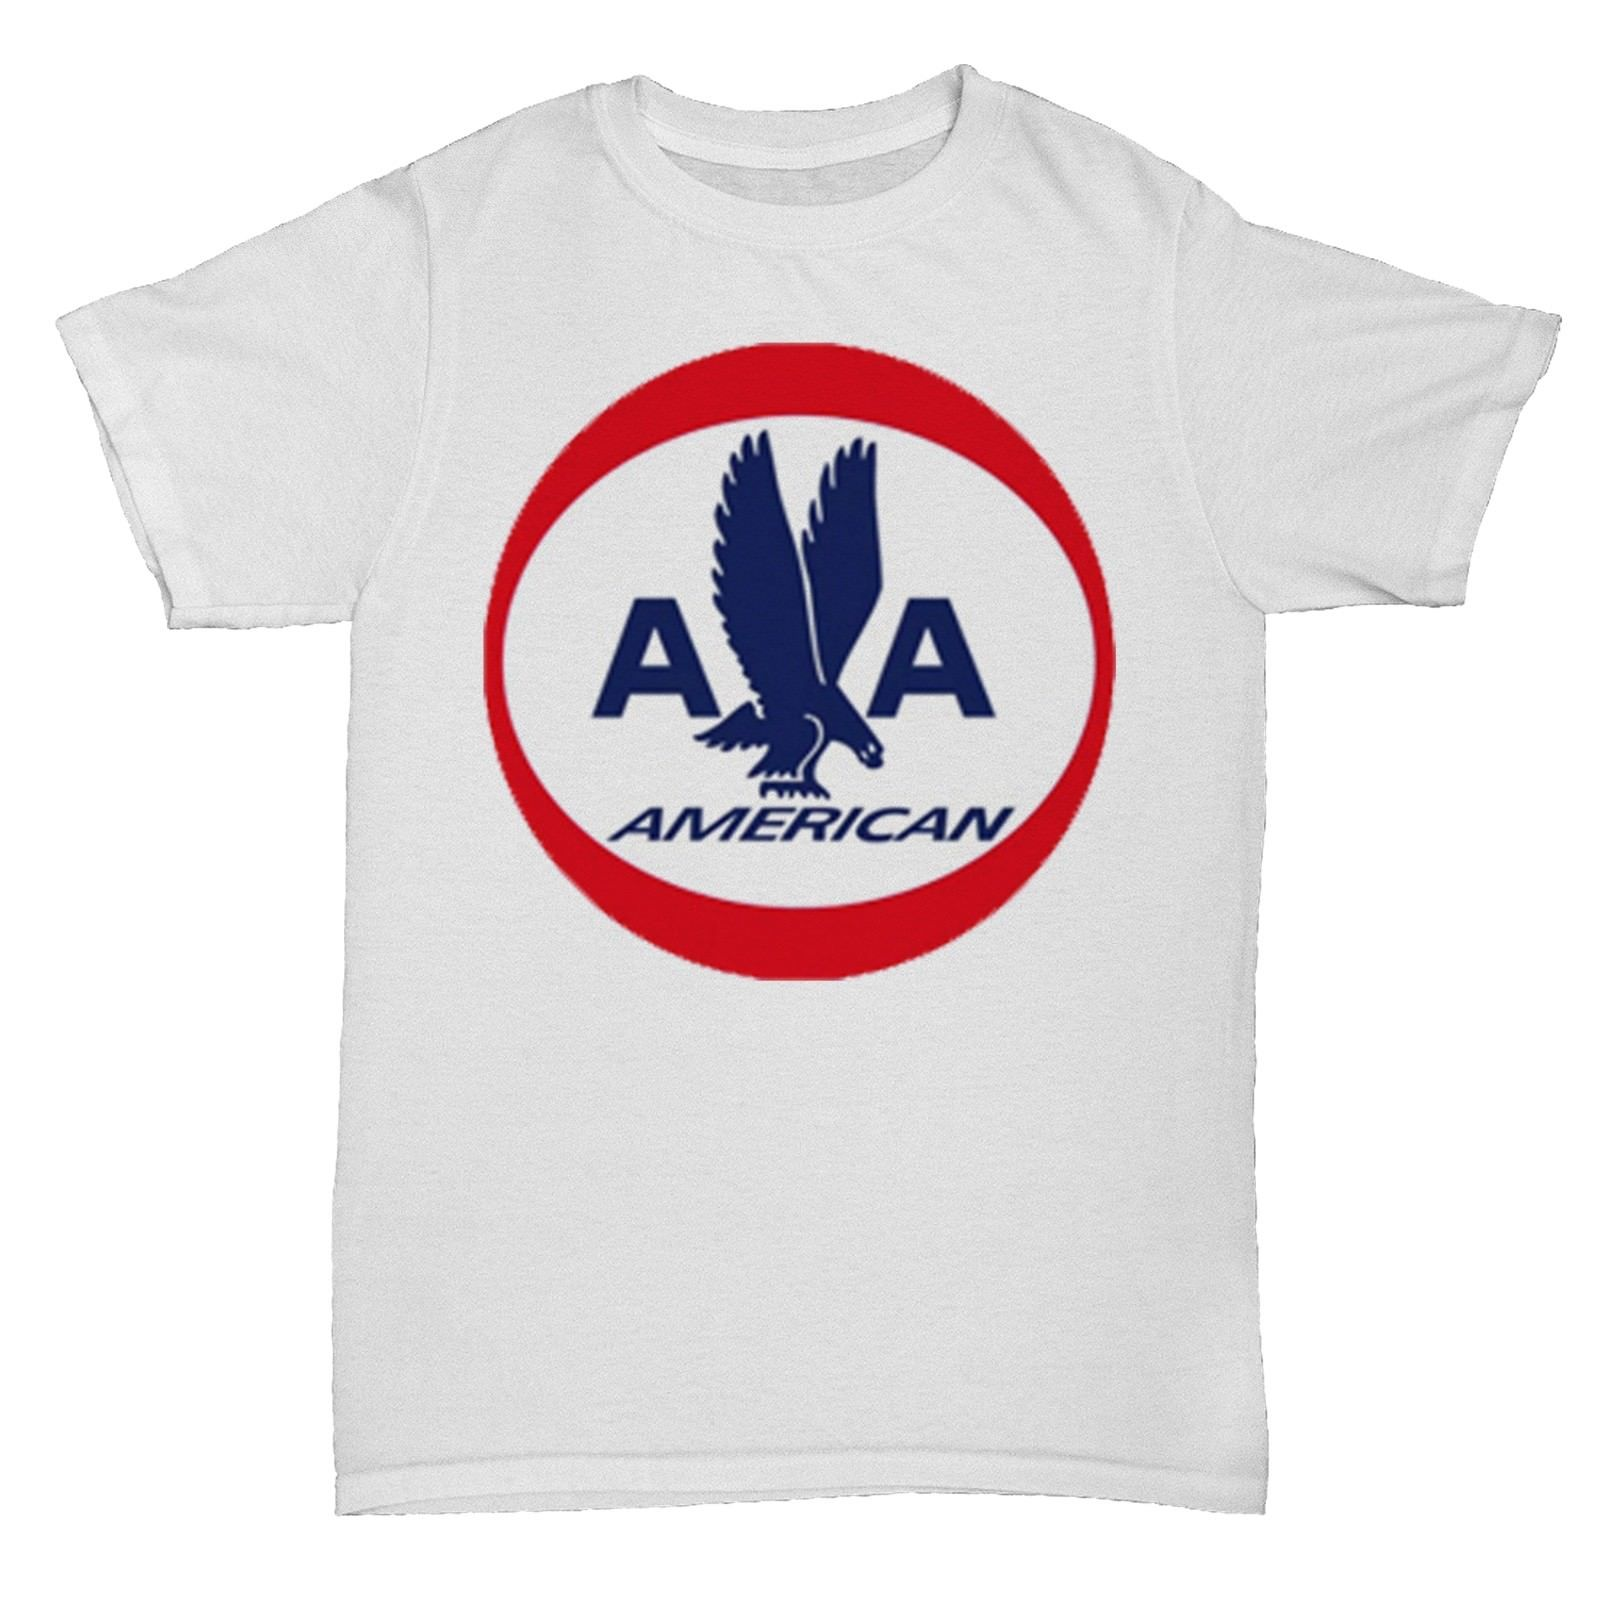 AMERICAN USA AIRLINES RETRO AEROPLANE BOAC PAN AM T SHIRT O-Neck Sunlight Men T-Shirt To ...